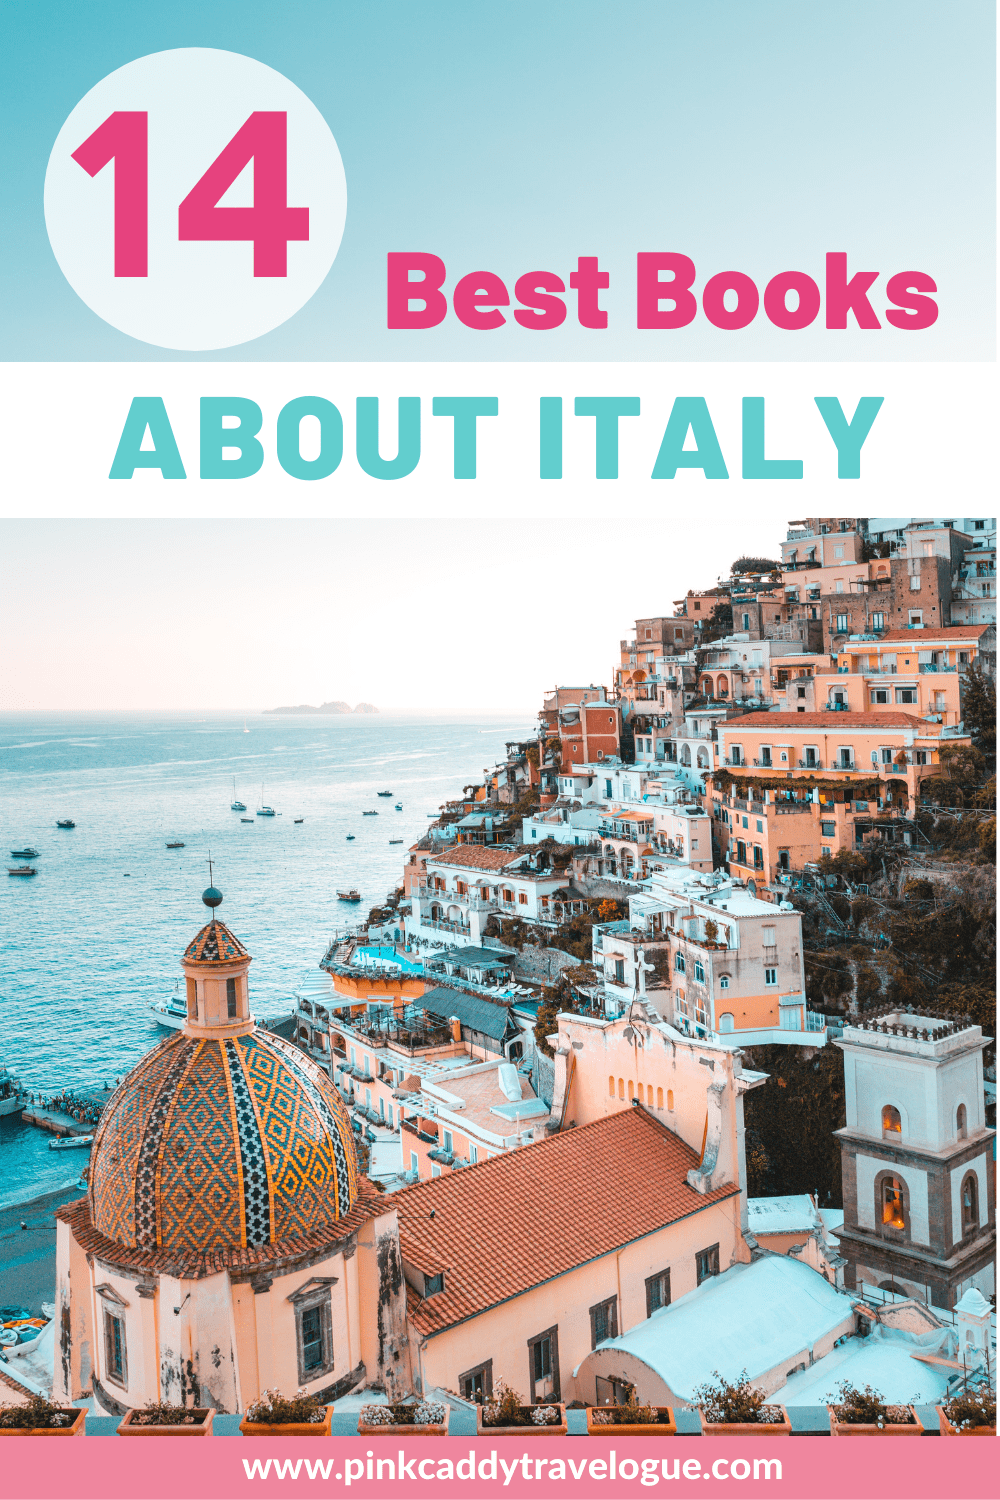 Are you planning a trip to the land of Chianti and Michelangelo? Here are the 14 best books about Italy to read before your trip! #italy #books #rome #florence #lakecomo #milan